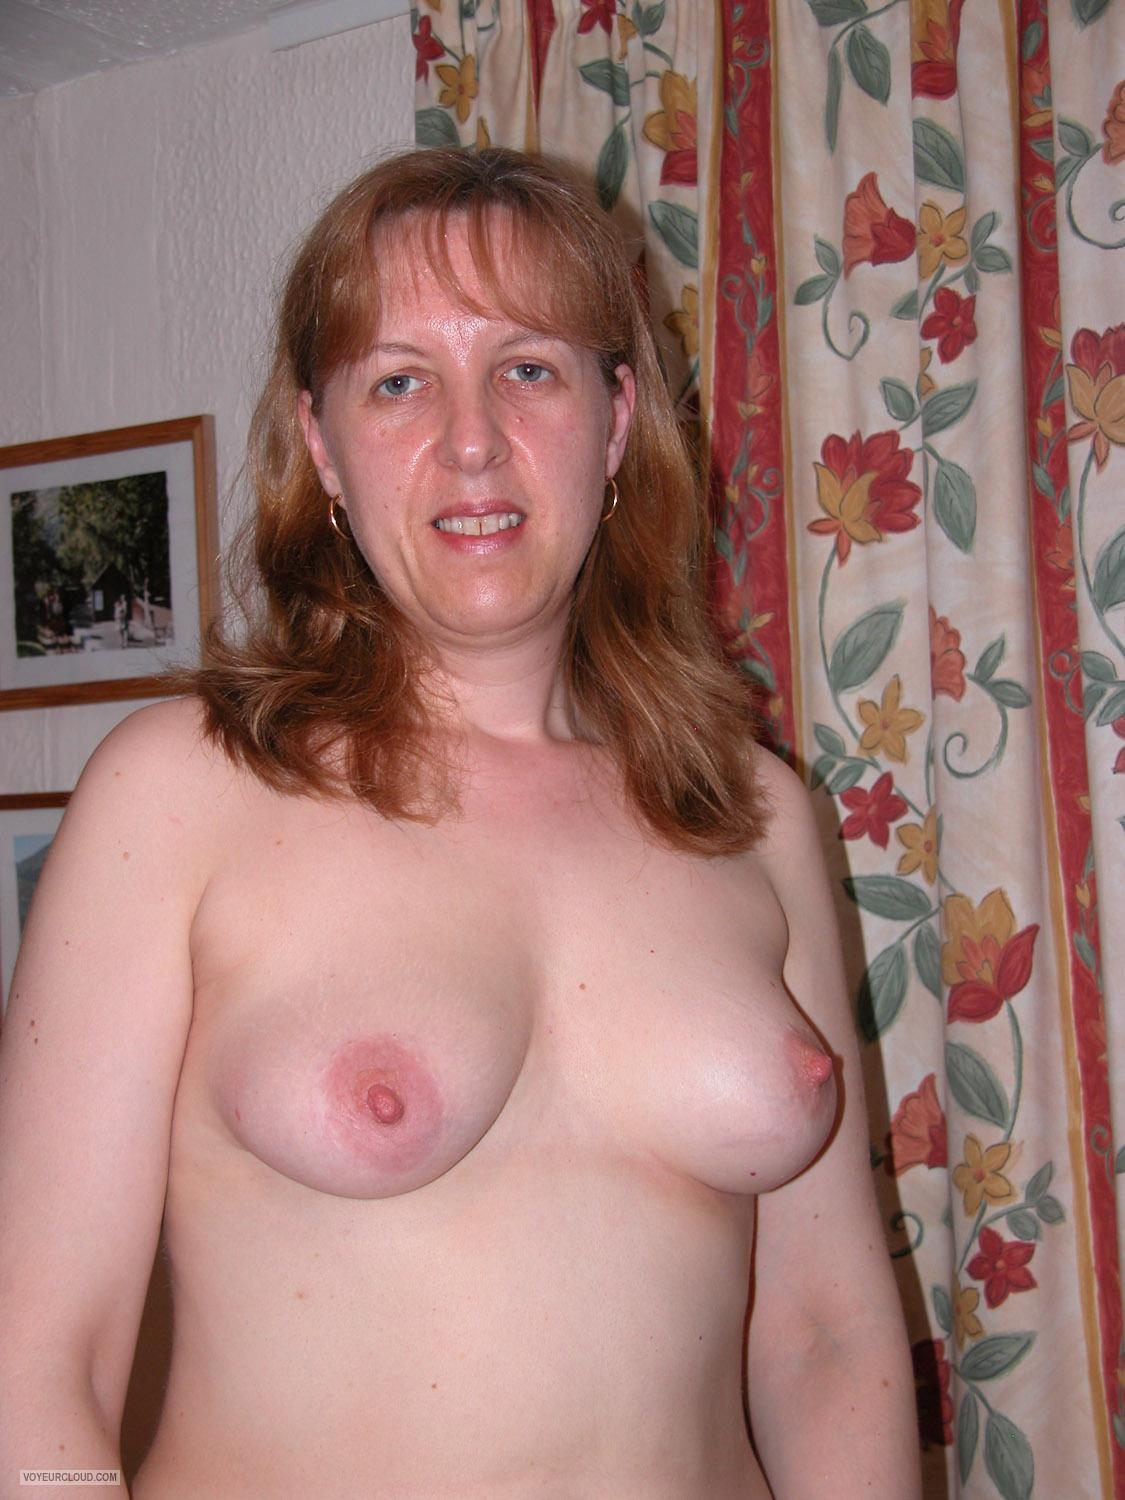 norsk sex dating screw my wife please